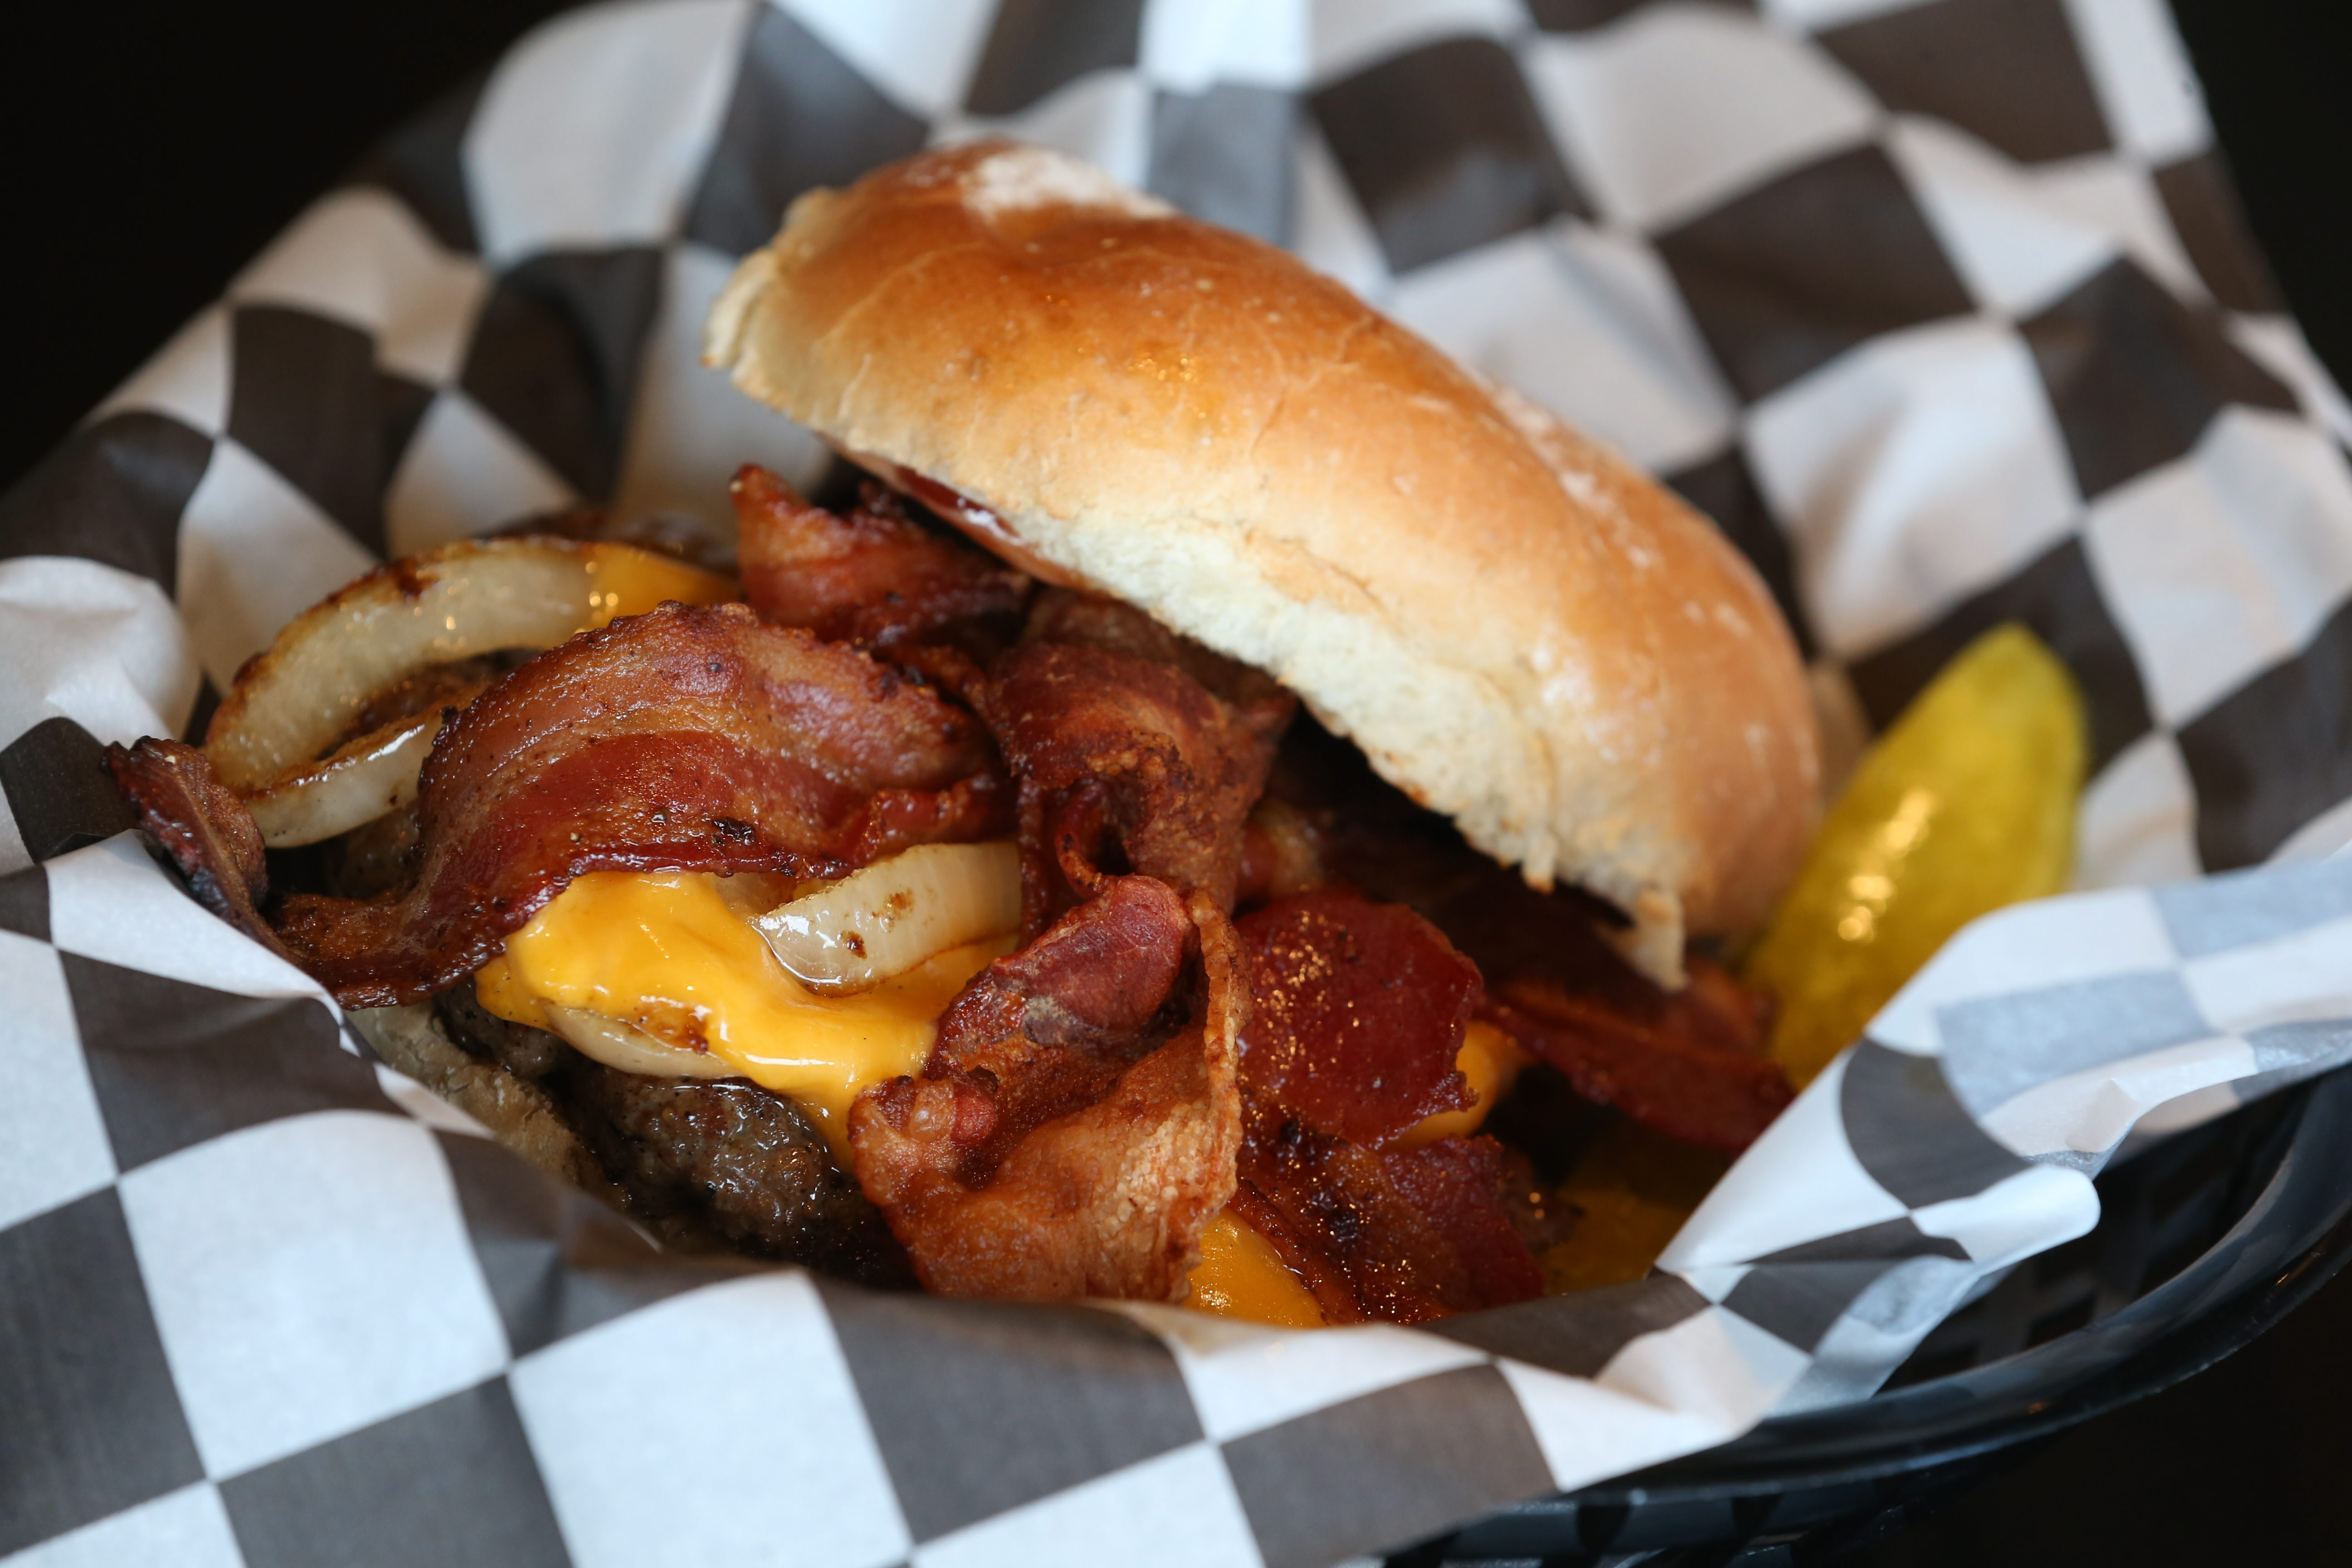 The Carmine burger at Bugsy's Burger Bar comes with applewood smoke bacon, caramelized onions, cheddar and barbecue mayo. (Sharon Cantillon/Buffalo News)